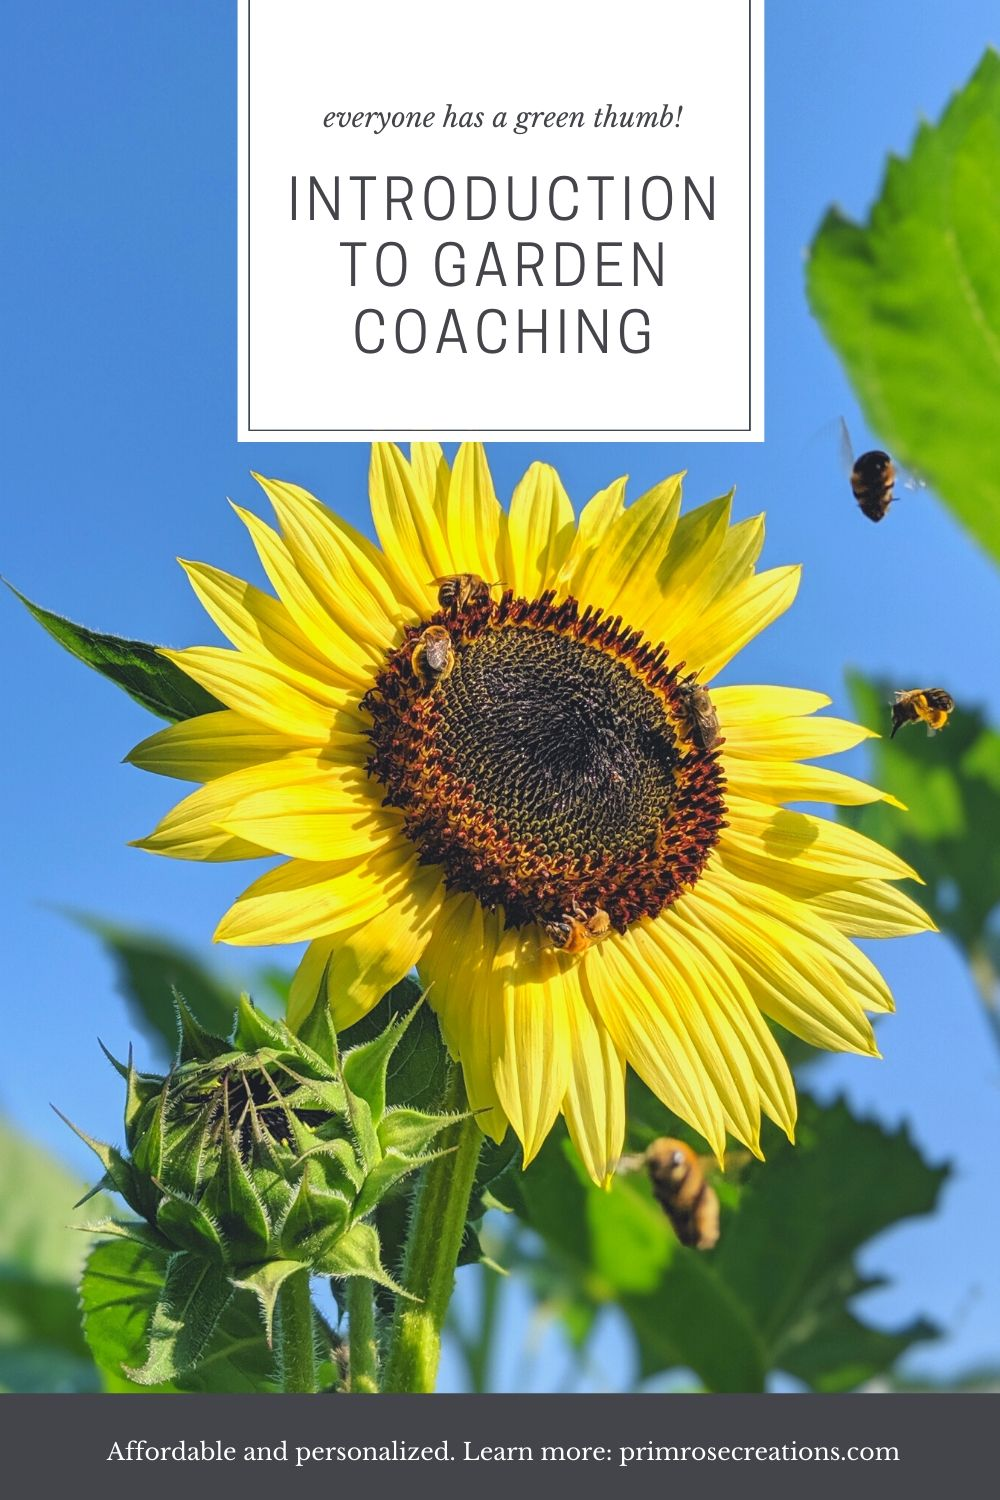 Christina Malinoski is a garden coach from the Amsterdam, NY area. Read her bio and experience and learn what a garden coach can do for you.